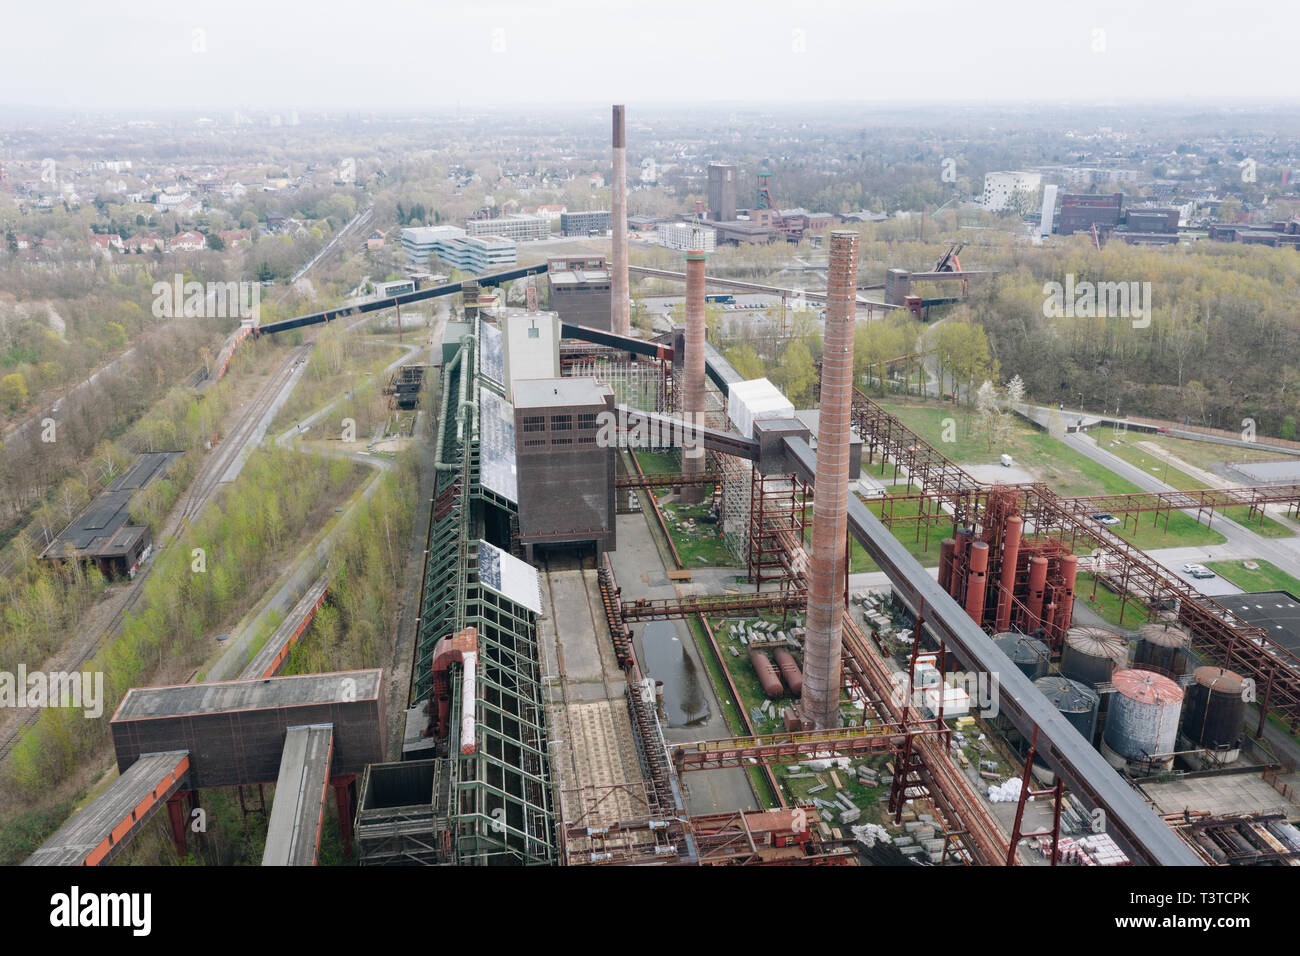 Aerial drone view of Zollverein big old abandoned industrial complex in Essen, Germany - Stock Image